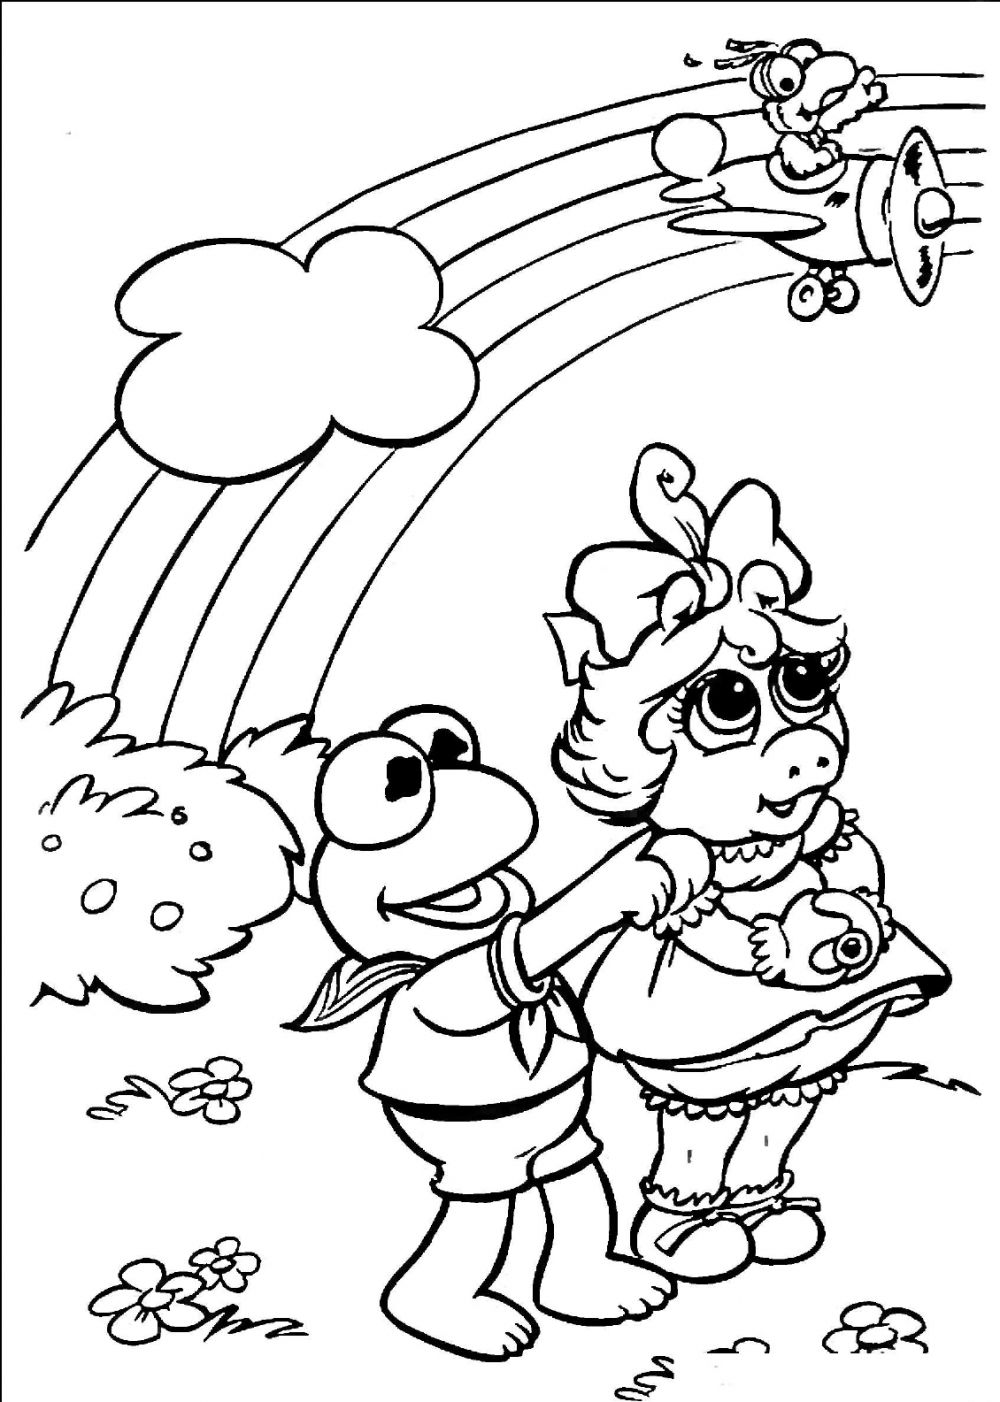 coloring templates for kids free printable rainbow coloring pages for kids kids templates coloring for